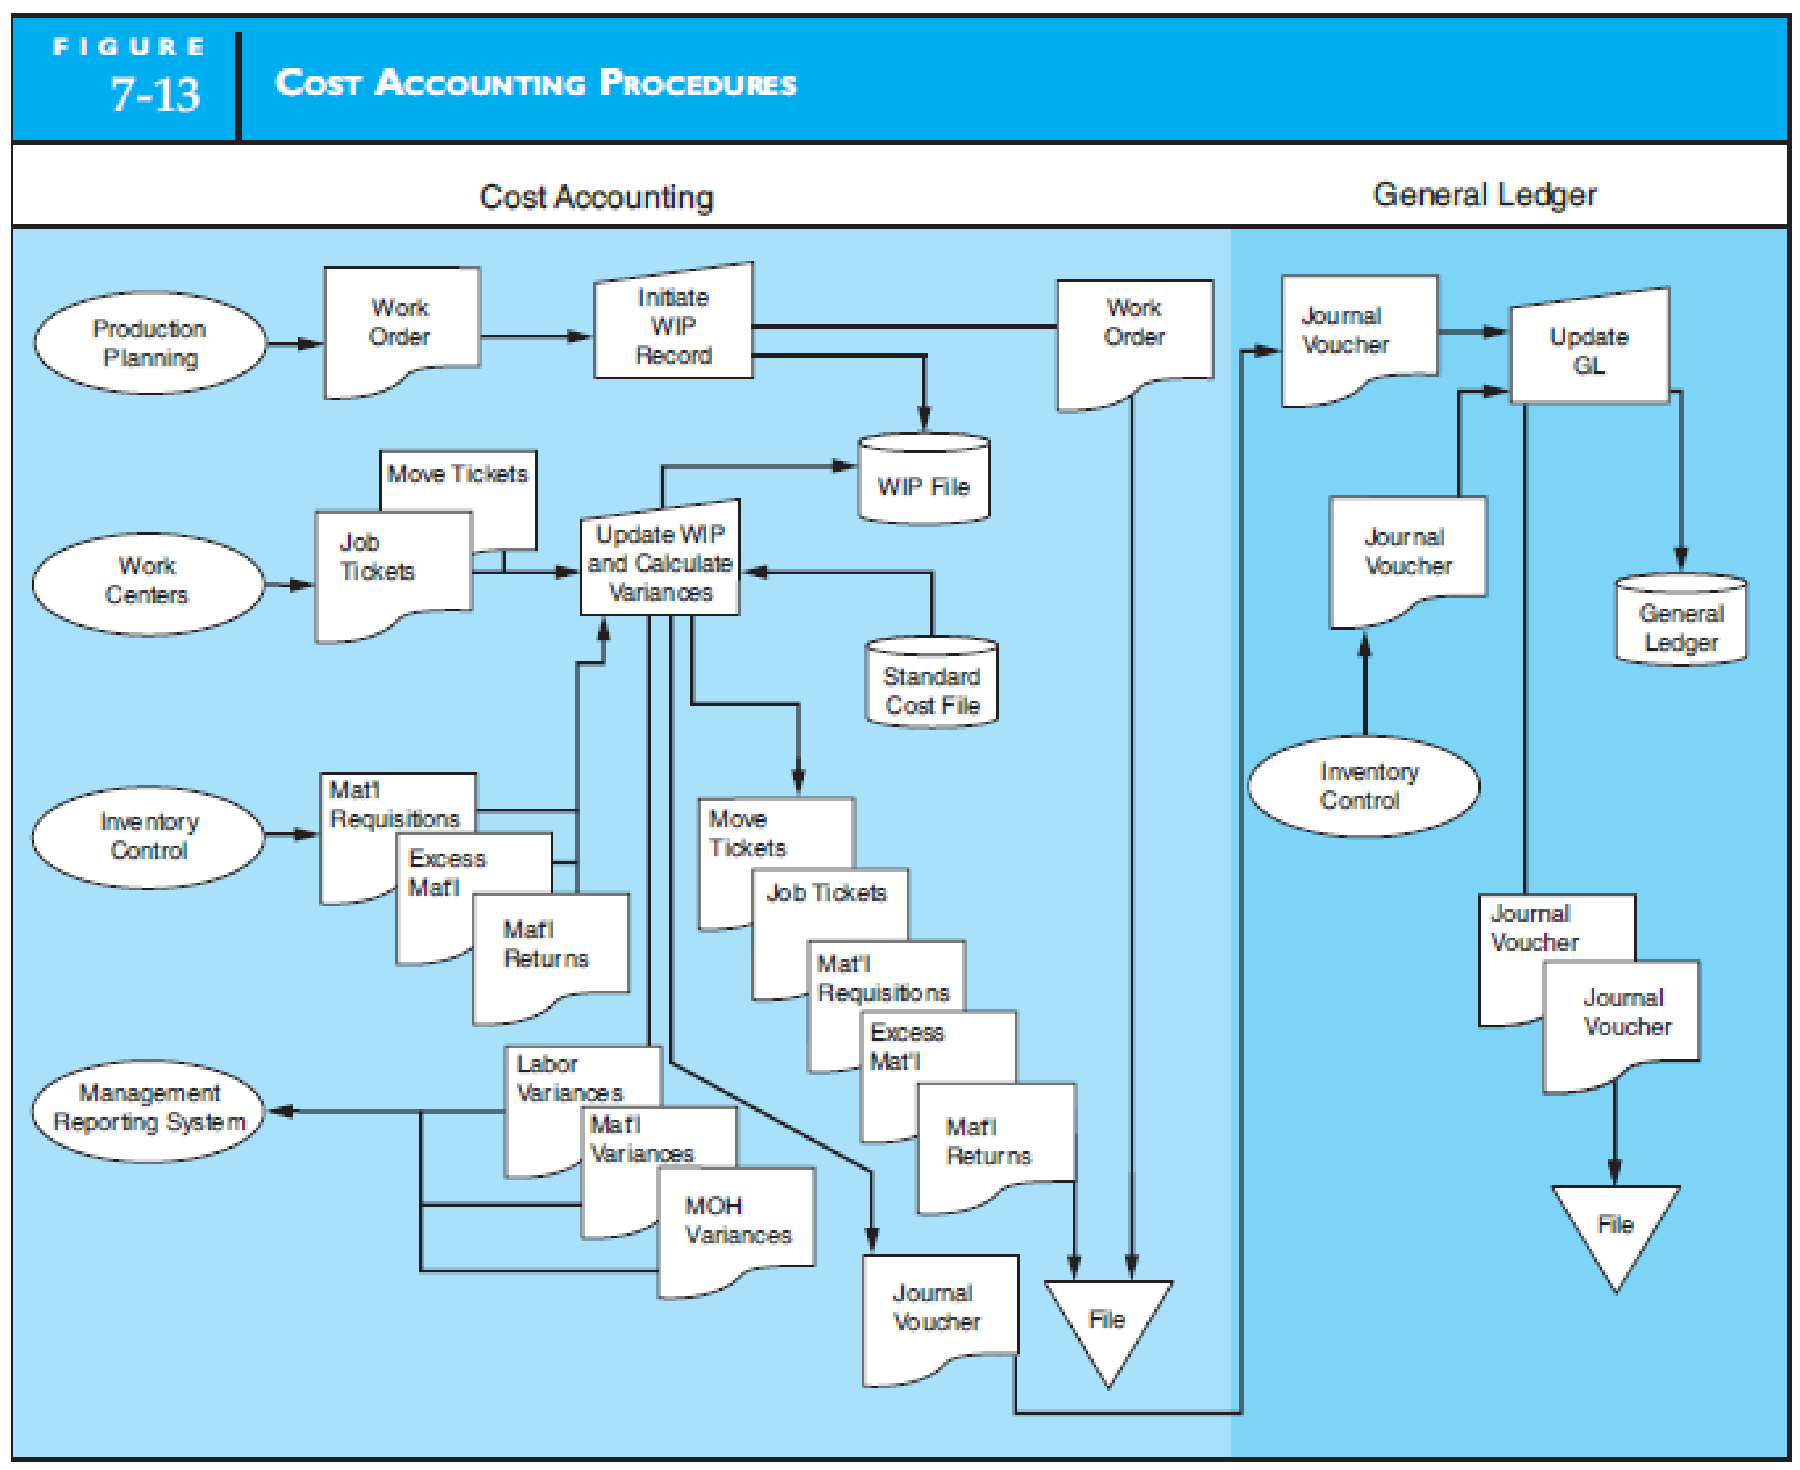 Design And Document Manufacturing Processes Design And Document With A System Flowchart A Computer Based Manufacturing Process That Possesses The Information Flows Of The Manual Systems Depicted In Figures 7 9 And 7 13 Assume